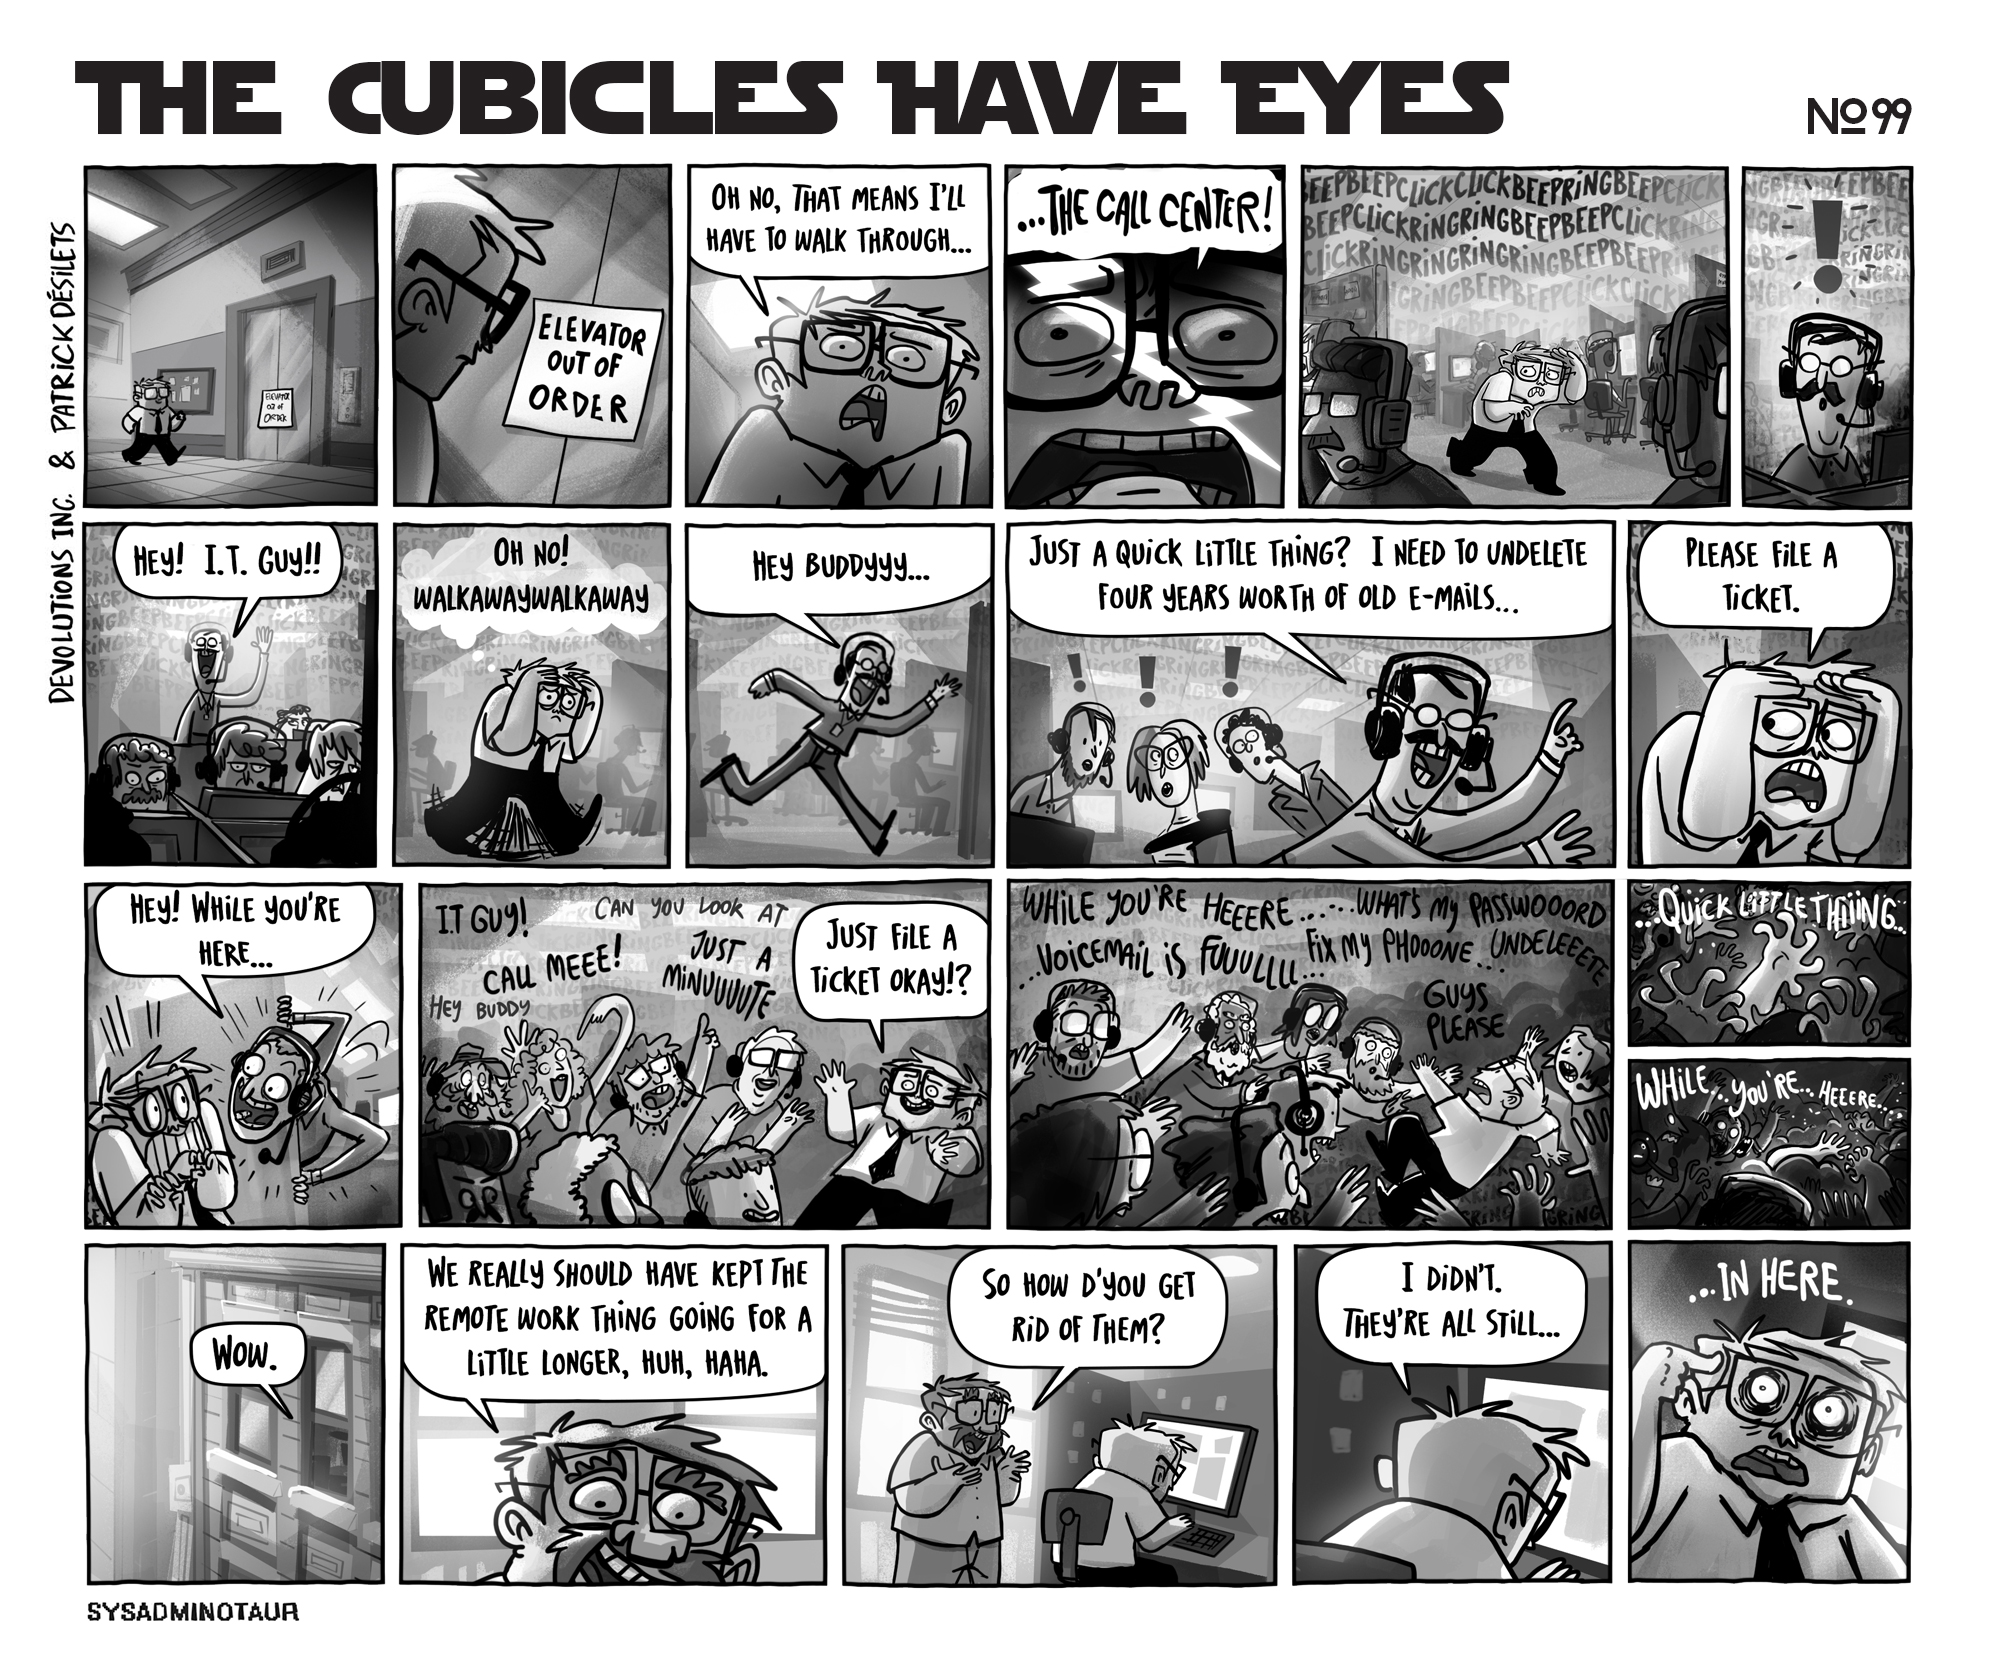 sysadminotaur-099-the-cubicles-have-eyes